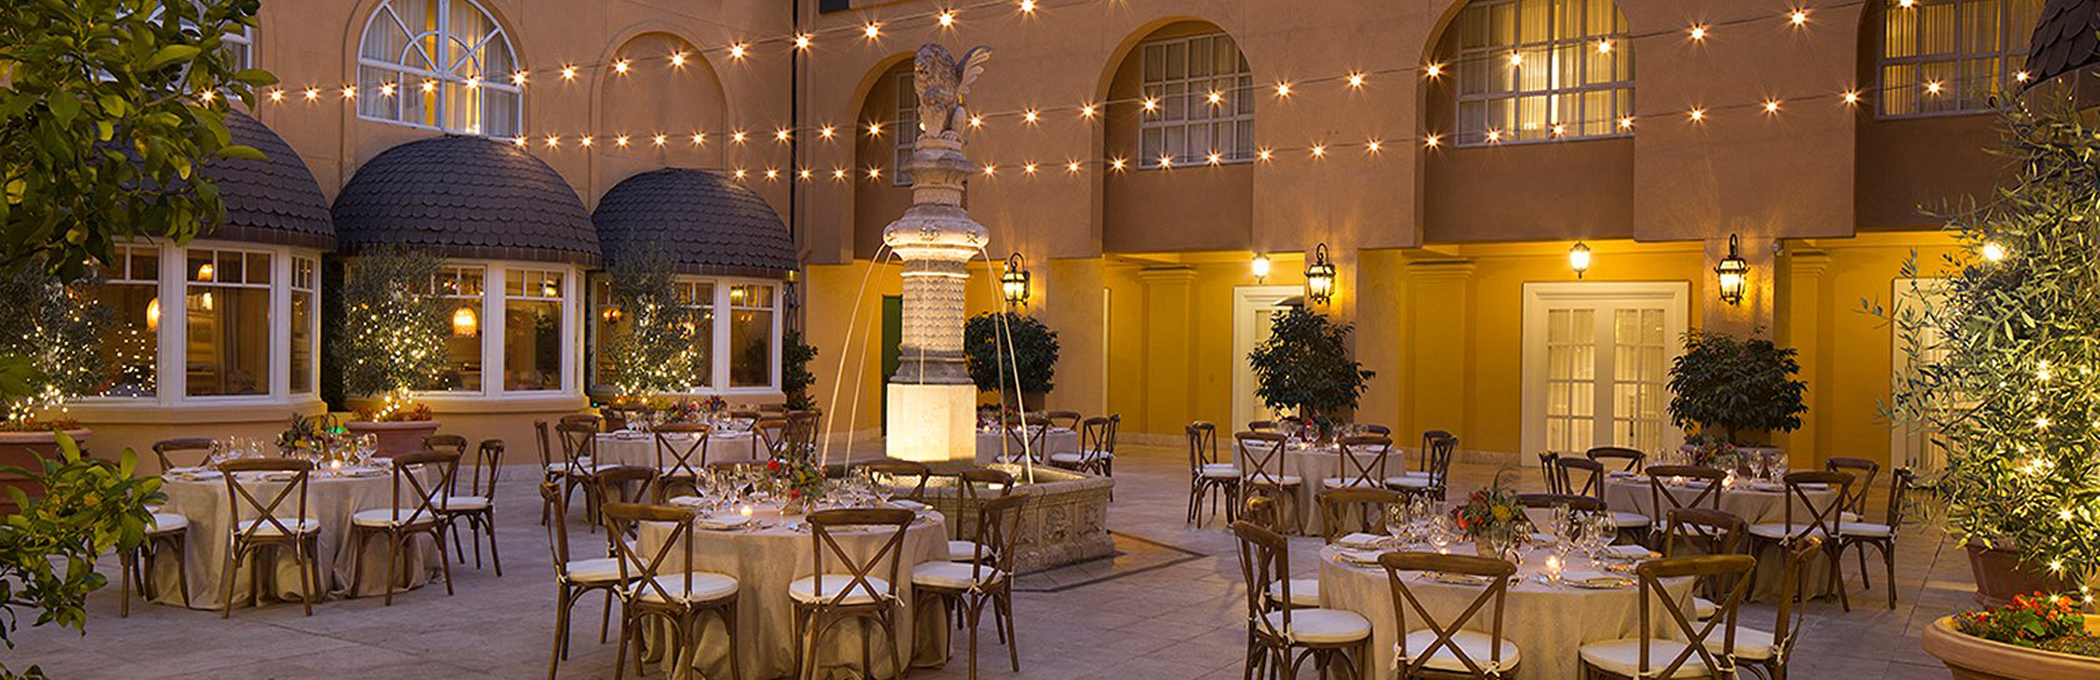 courtyard with tables and chairs sitting below string lights